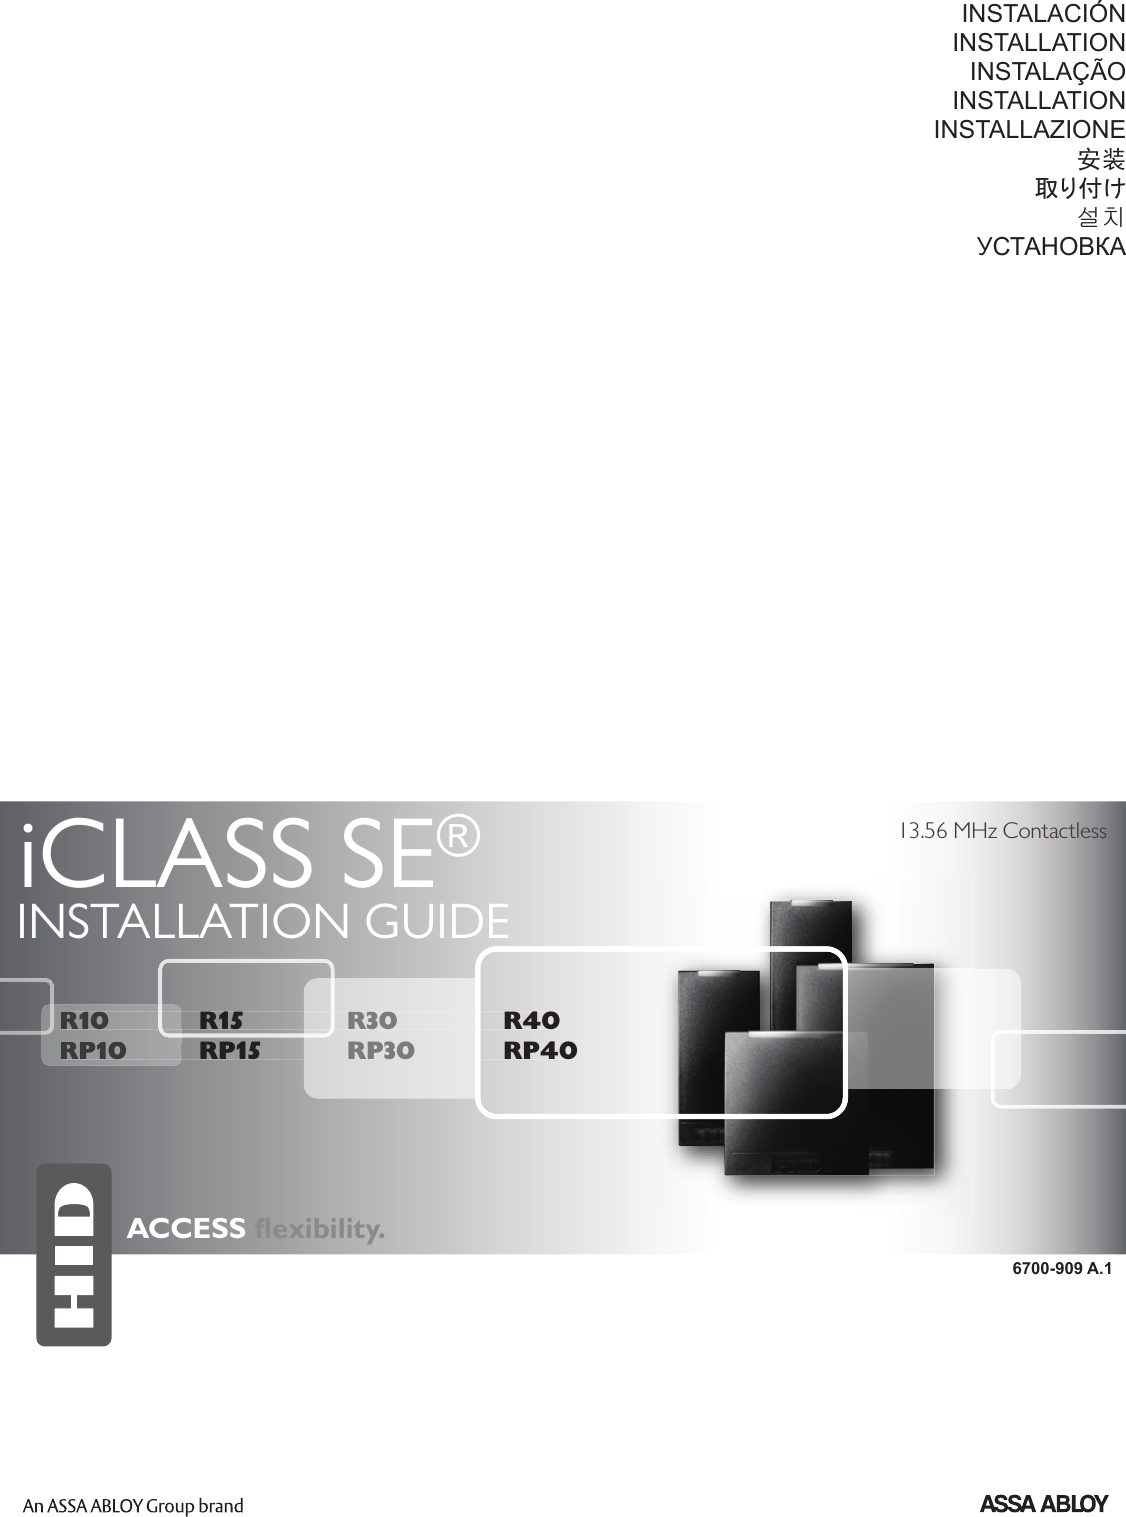 Hid Global Iclassr10e Iclass Se Reader User Manual Dfm Rev C Access Wiring Diagram Universal Installation Guide